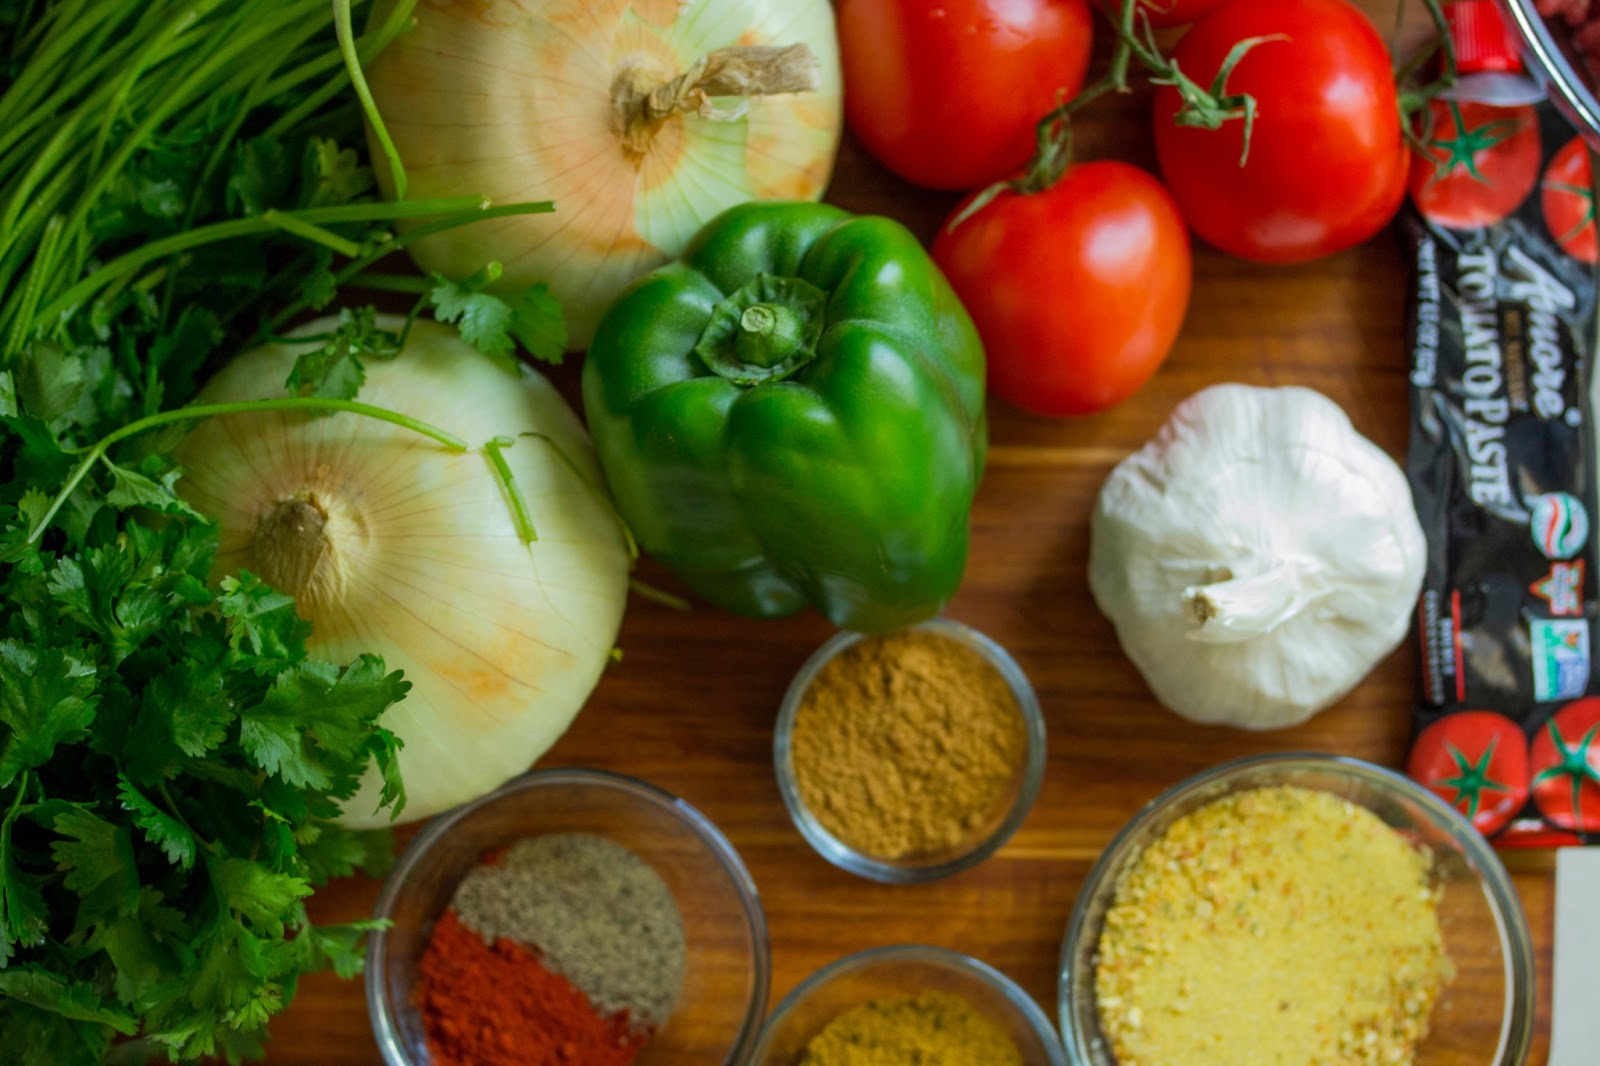 A colorful array of vegetables and spices fill a table.